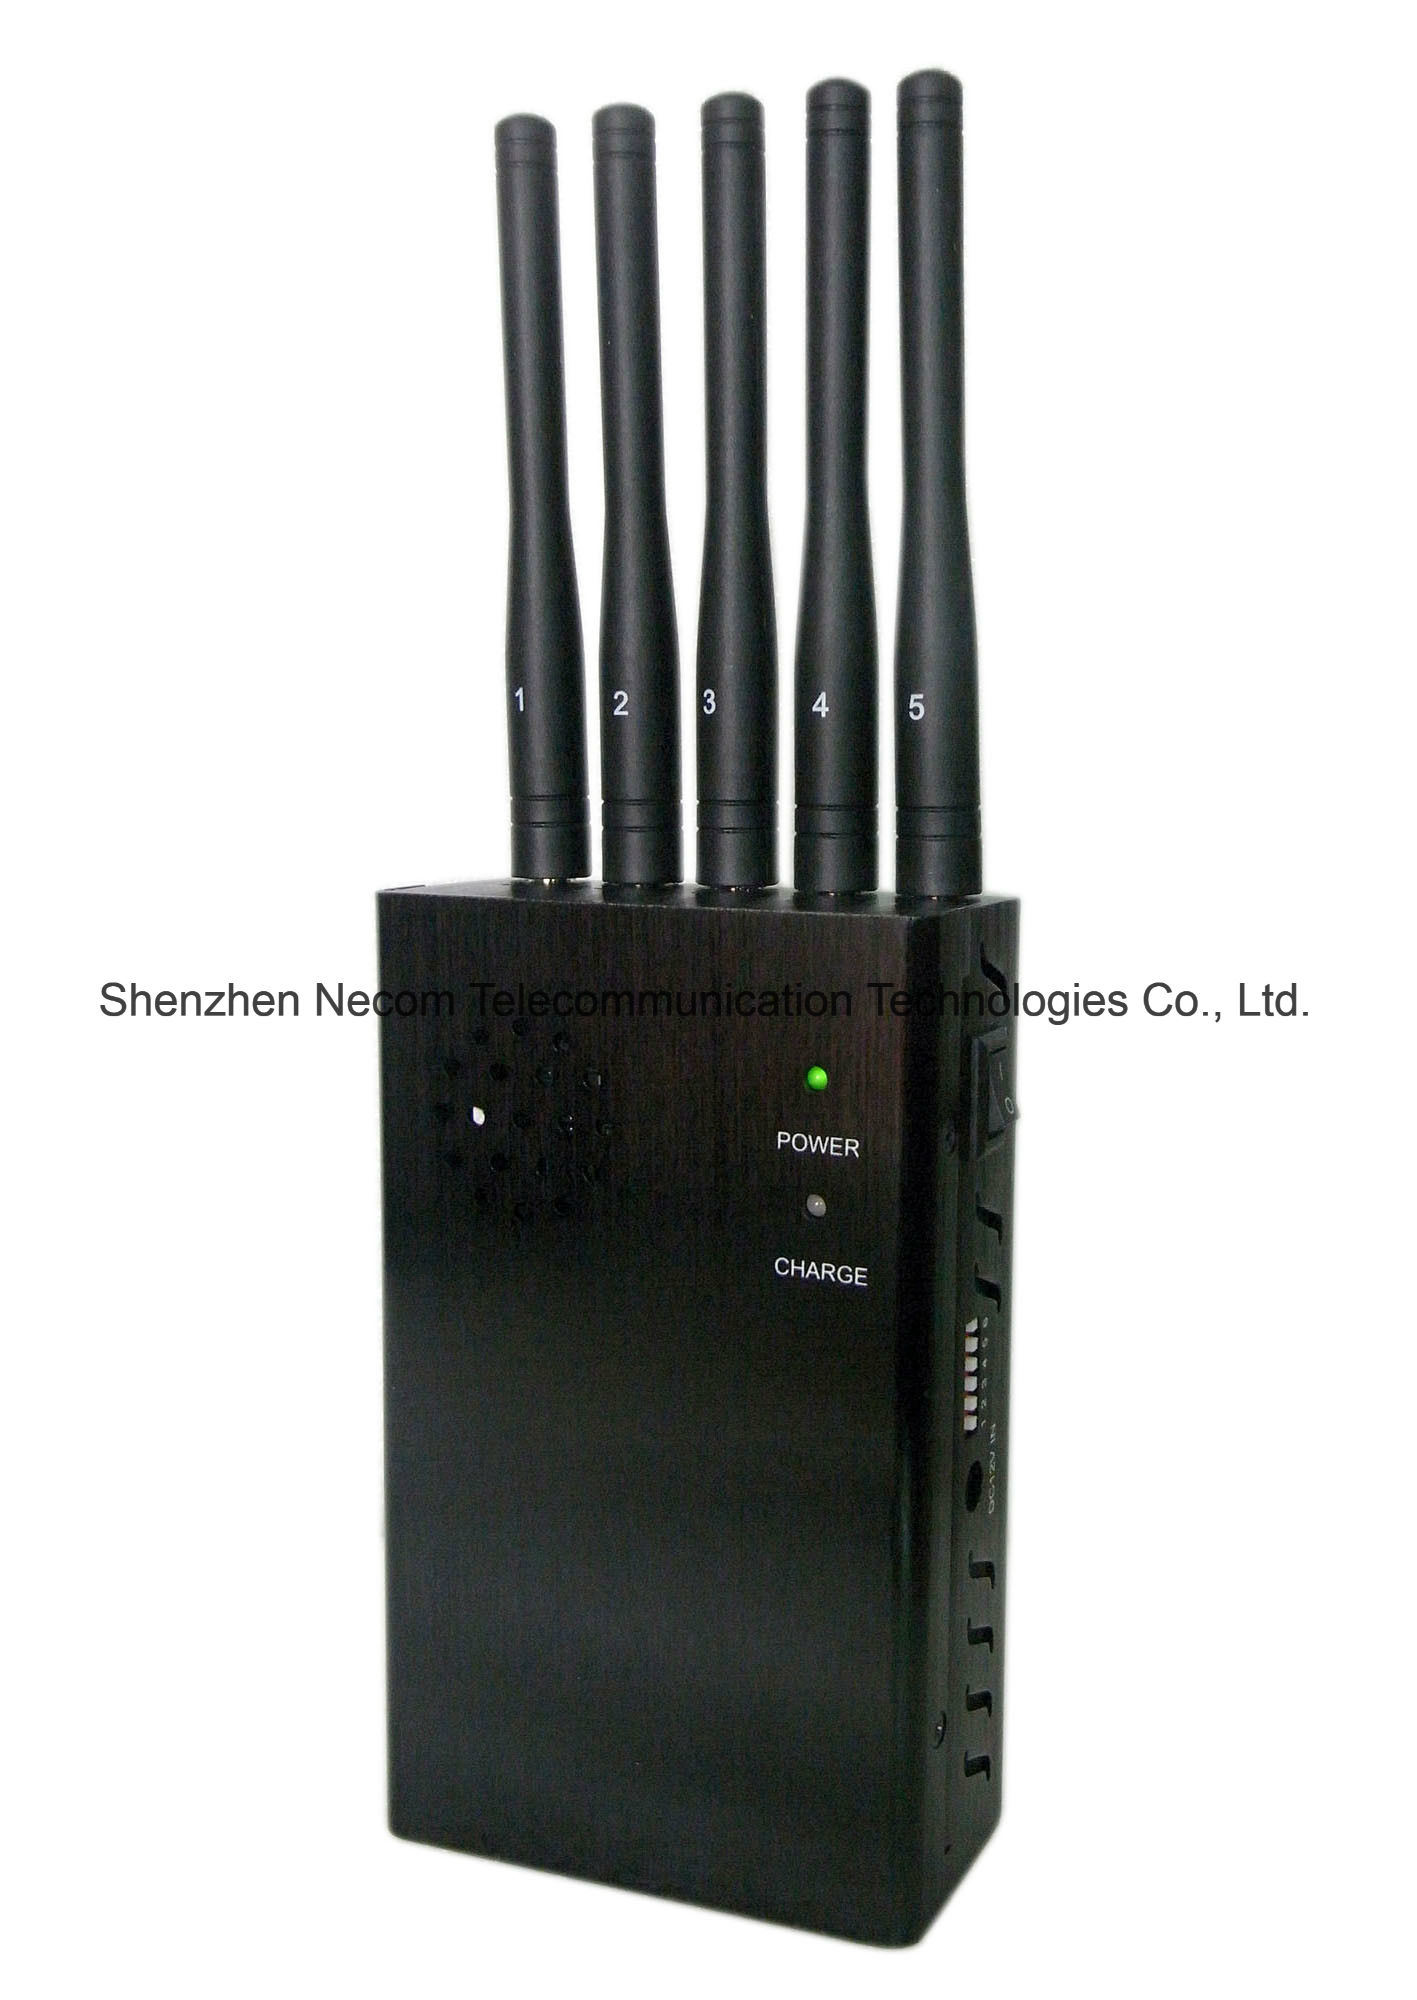 microphone jammer - China 5 Antenna Big Portable Cell Jammer, Portable GPS Jammer, Portable WiFi Jammer, Jamming 2g+3G+4G+Gpsl1 - China 5 Band Signal Blockers, Five Antennas Jammers